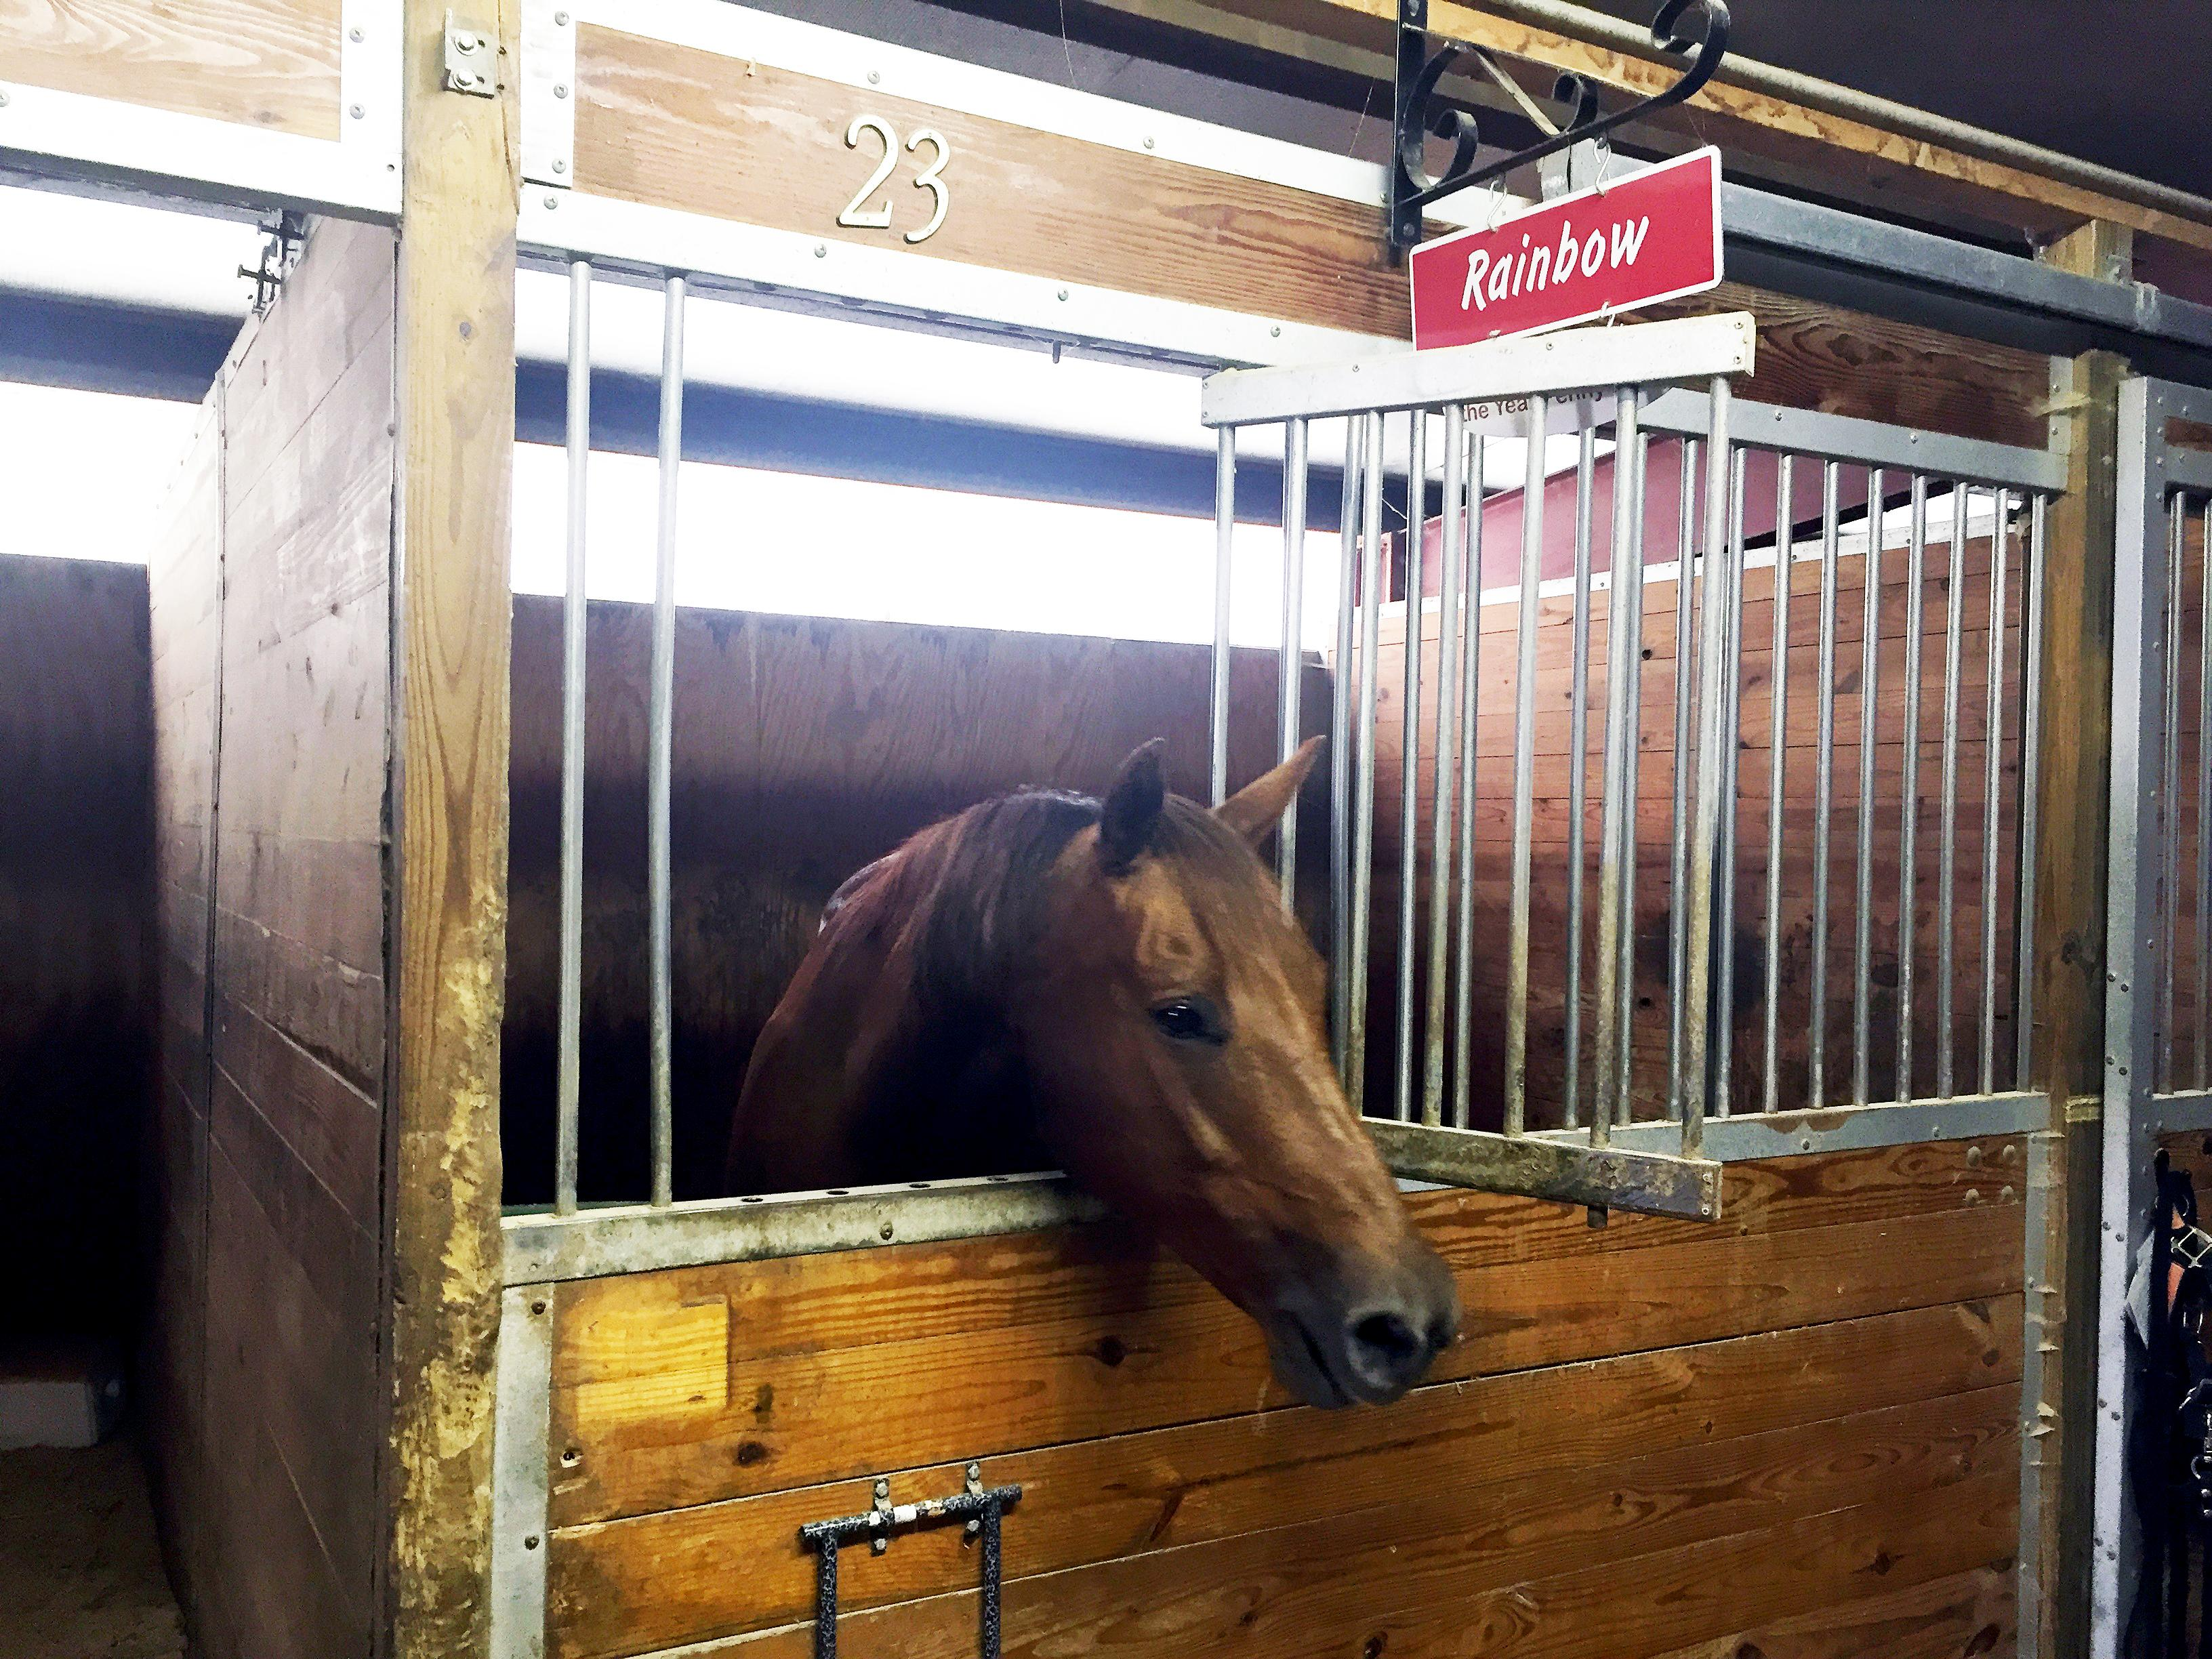 Original | Rainbow the Horse in her stall at HETRA